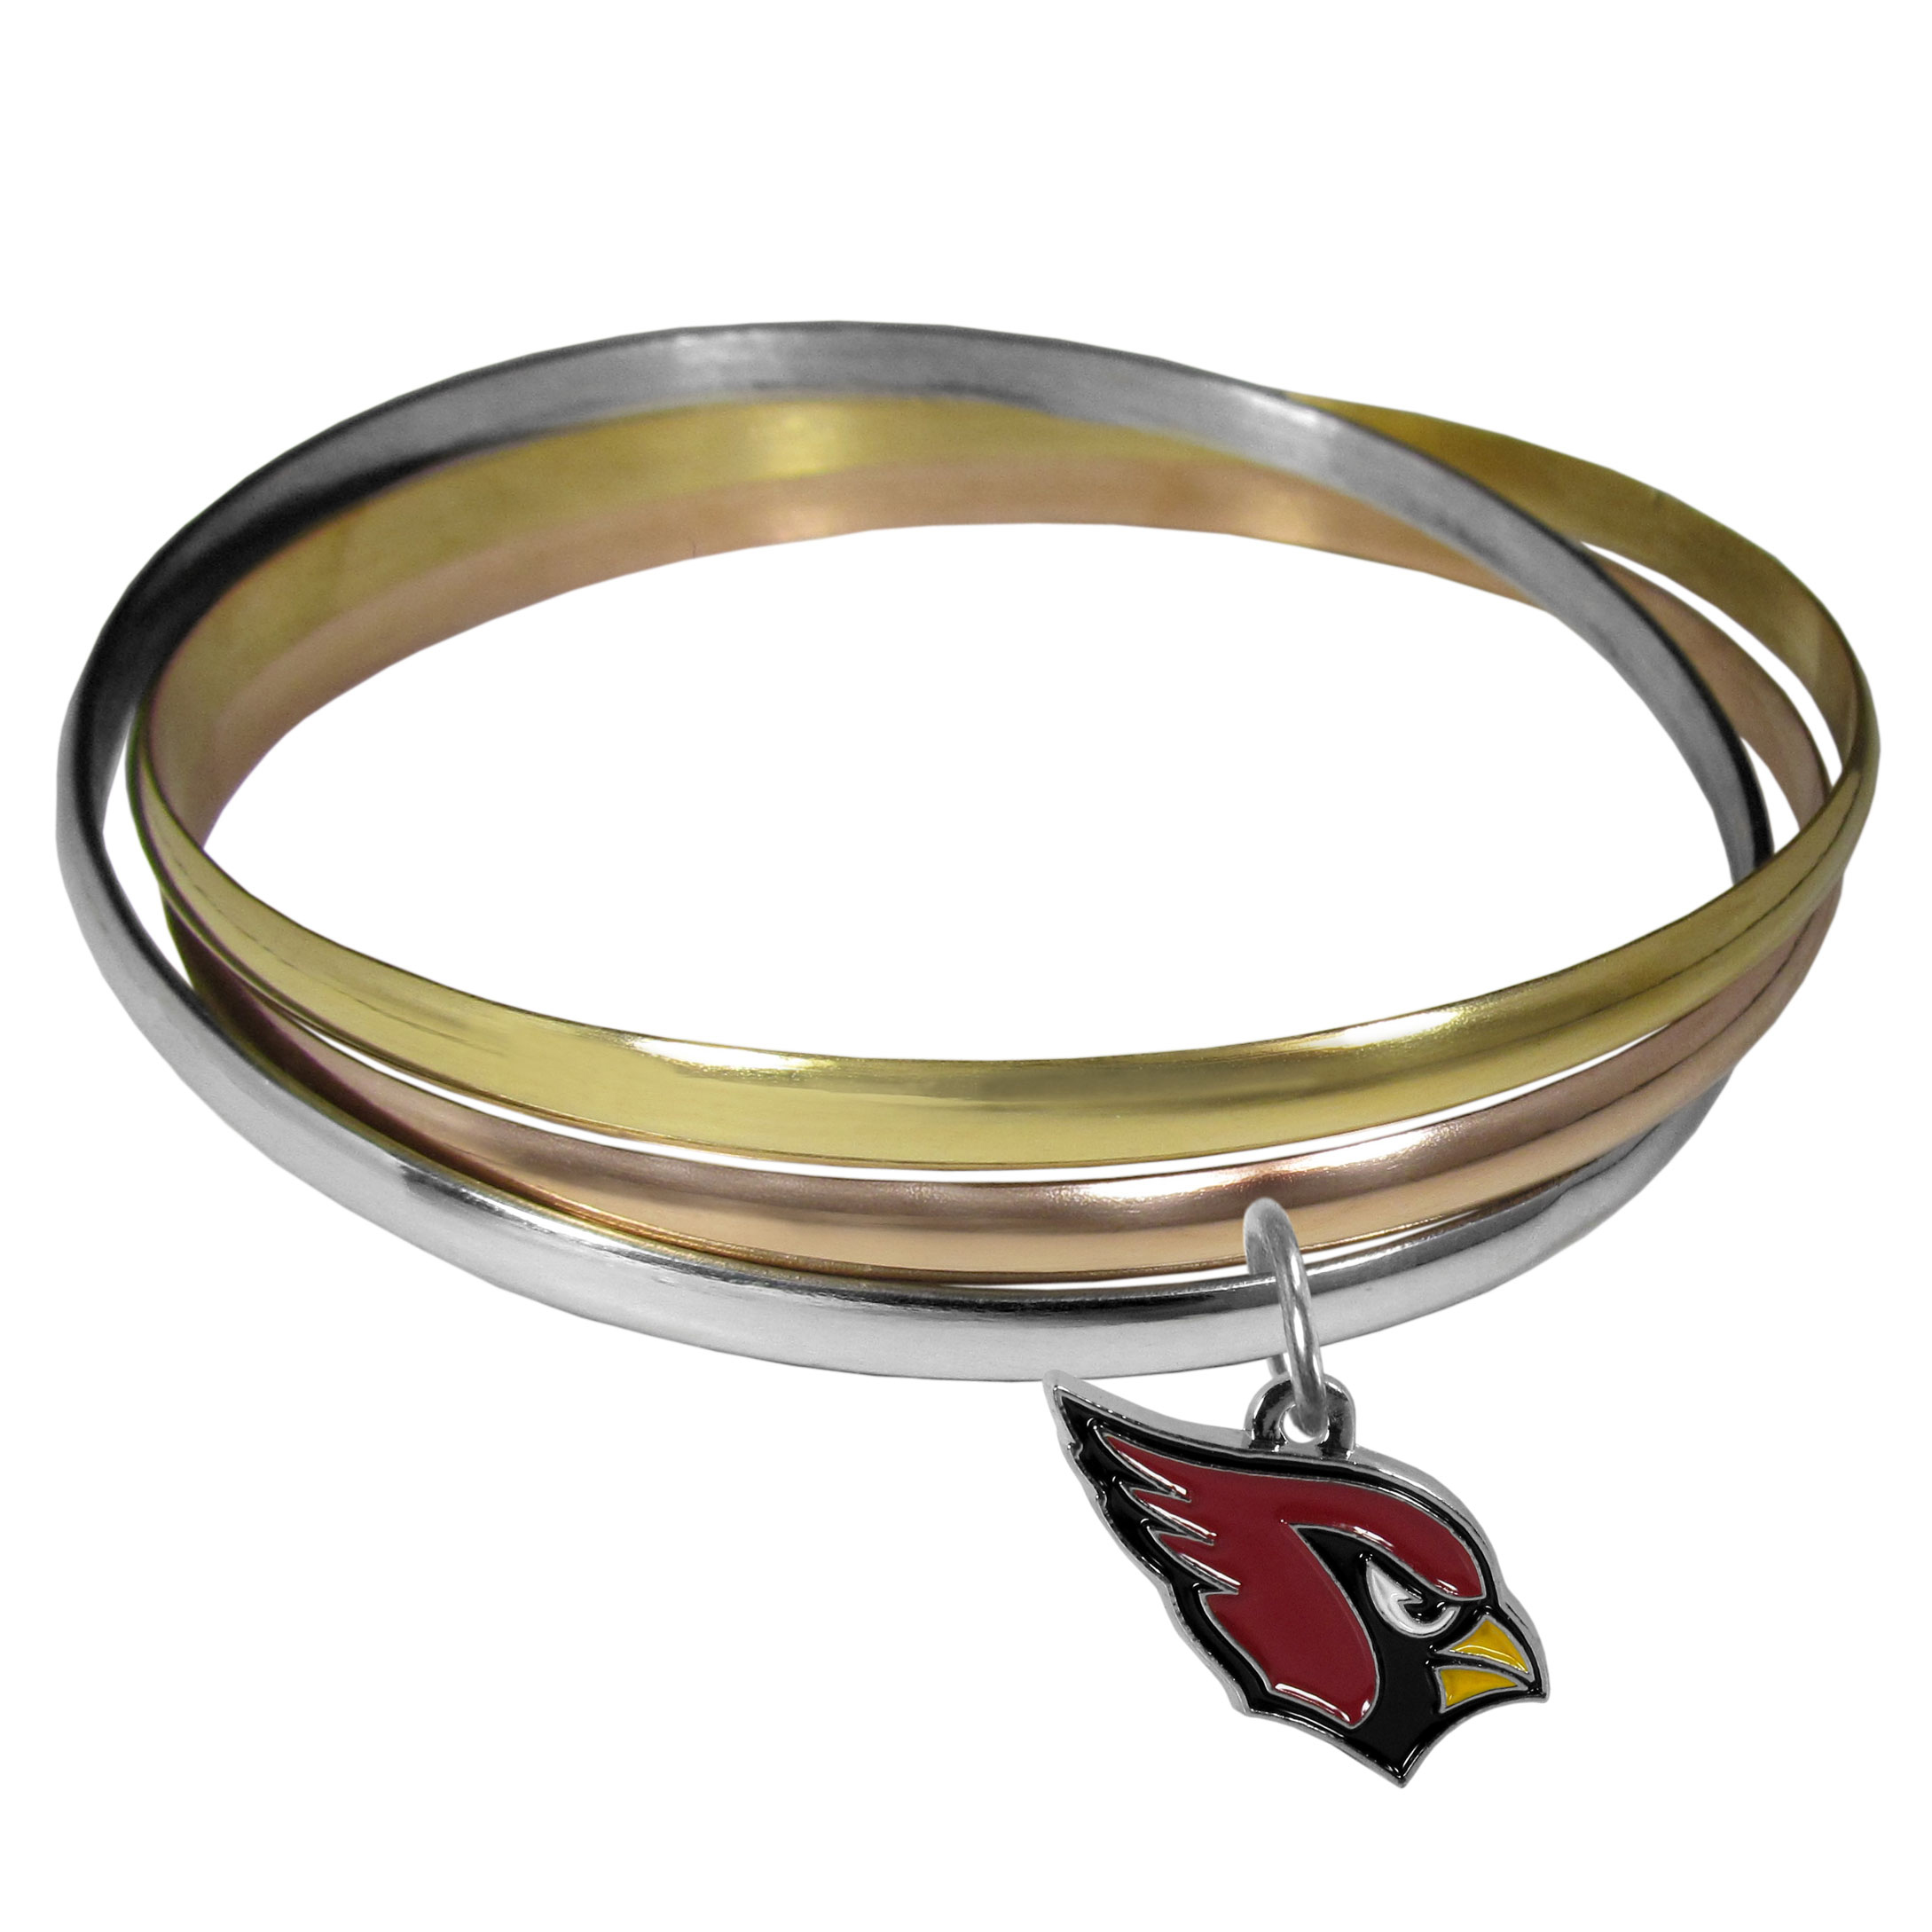 Arizona Cardinals Tri-color Bangle Bracelet - These beautiful bangles come in a interlocking style and feature a fully cast Arizona Cardinals charm with enameled team colors. The bracelet has a silver toned bangle, gold tone bangle and brass toned bangle.